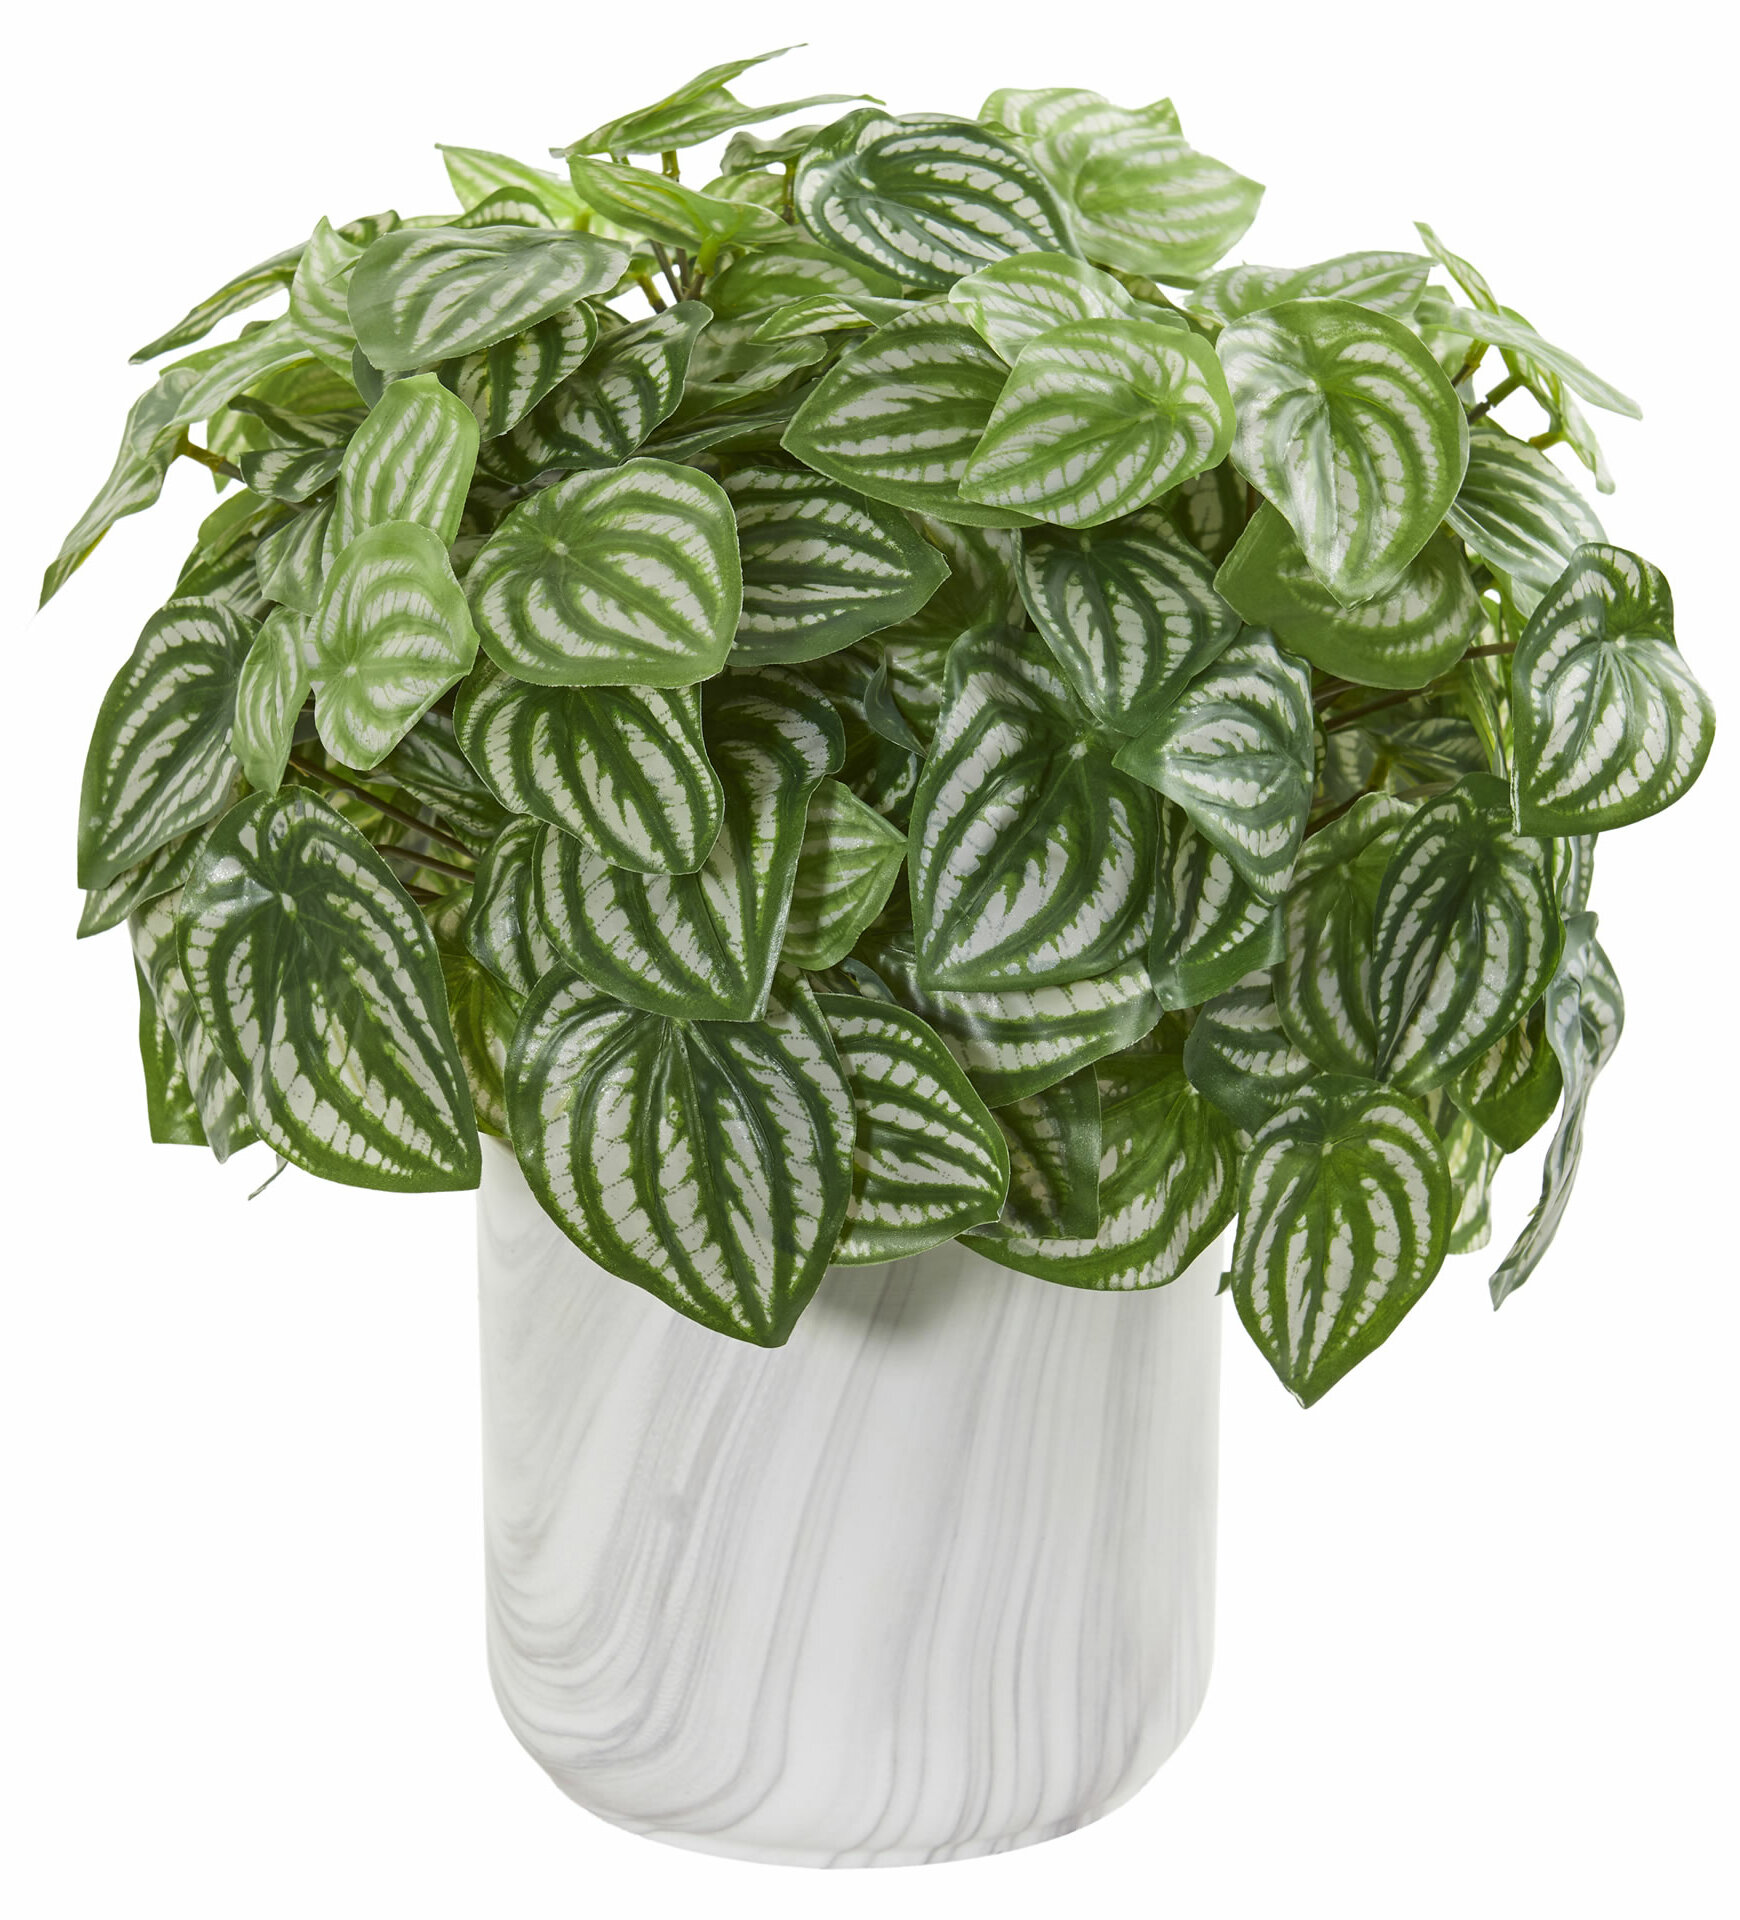 Charlton Home Artificial Peperomia Foliage Plant In Decorative Vase Wayfair